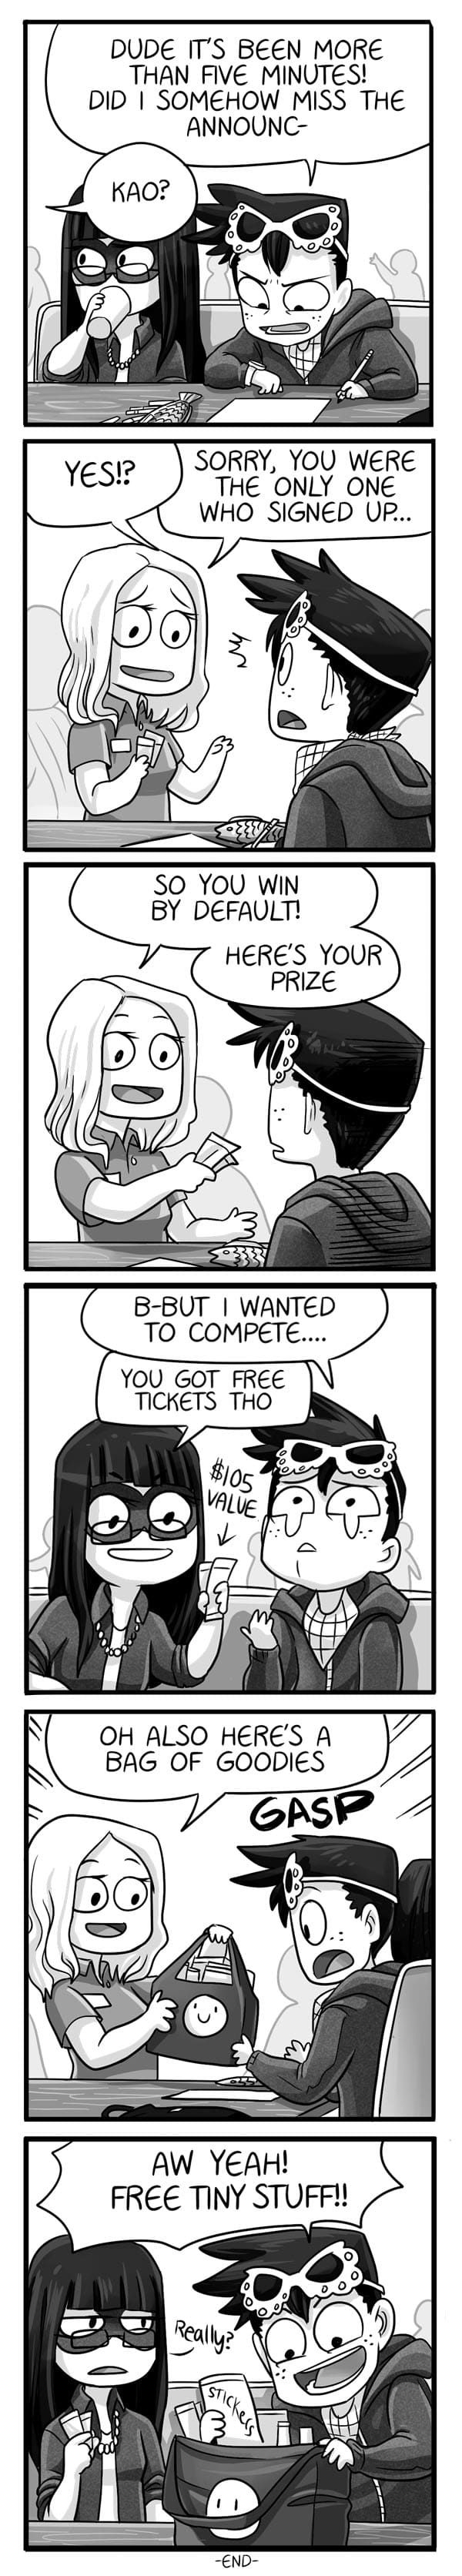 Mondo Mango :: The Competition (Part 5) | Tapastic Comics - image 1